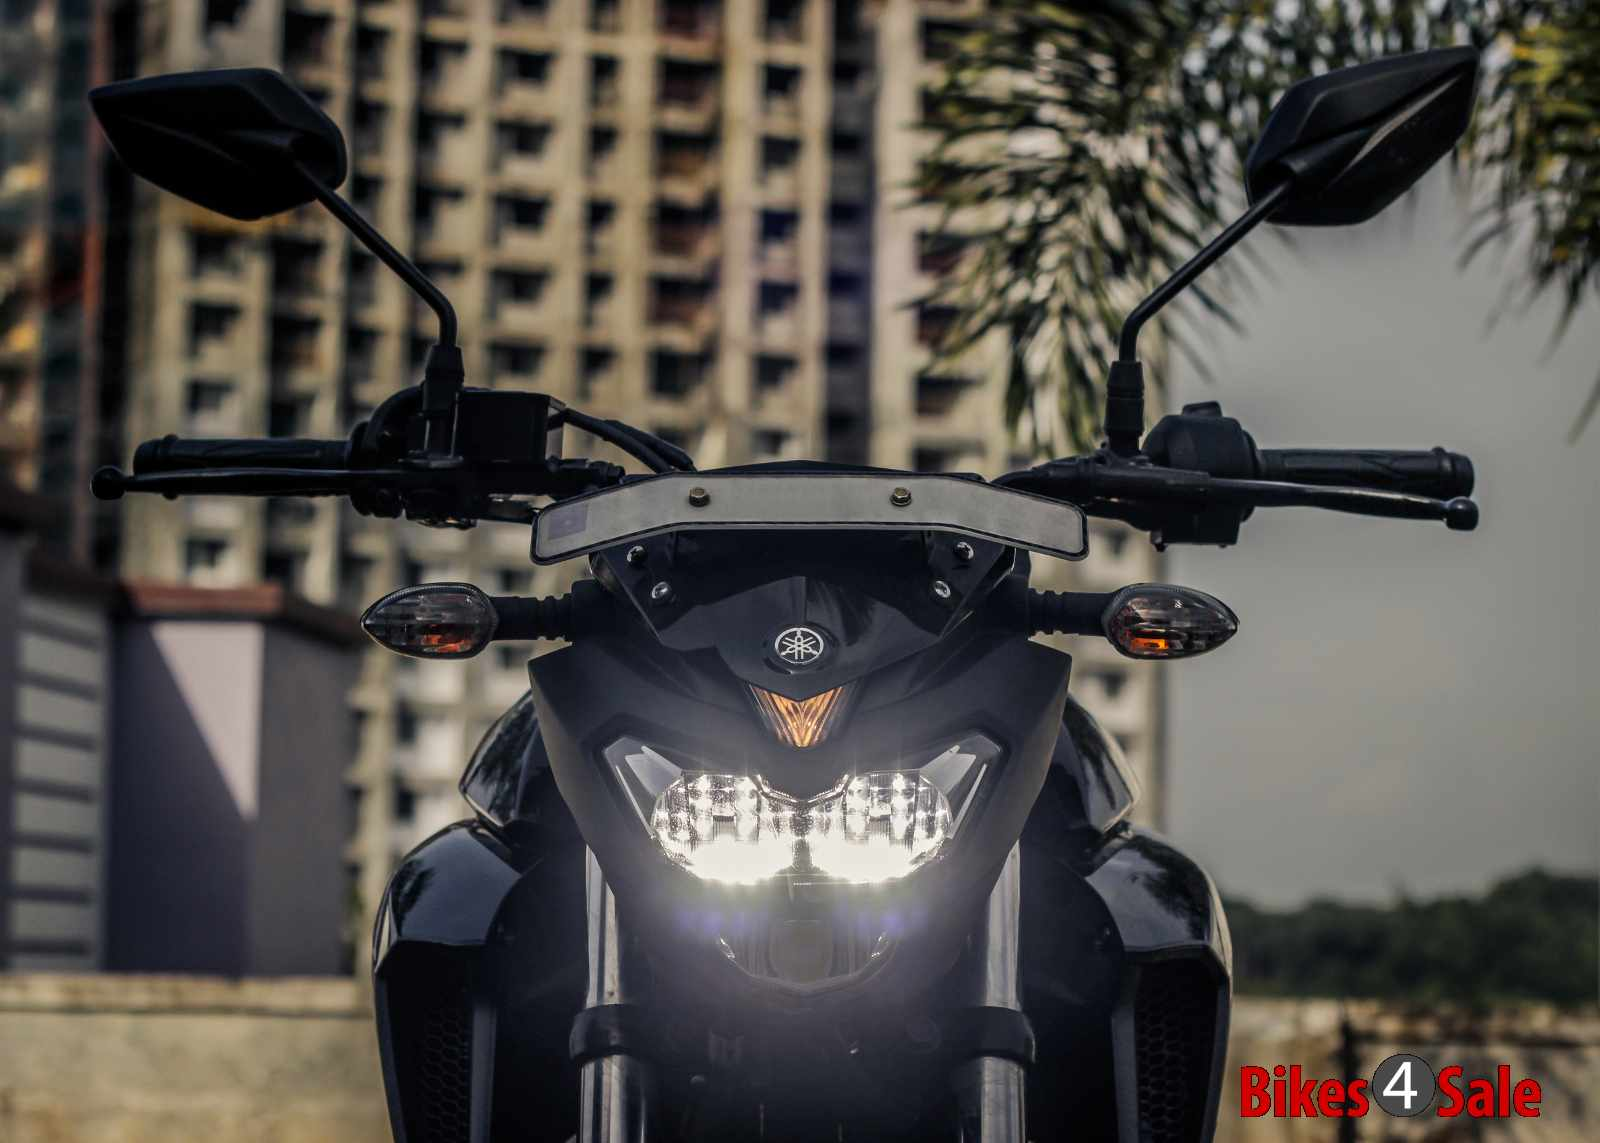 Yamaha Fz25 LED headlamp with pilot lamp